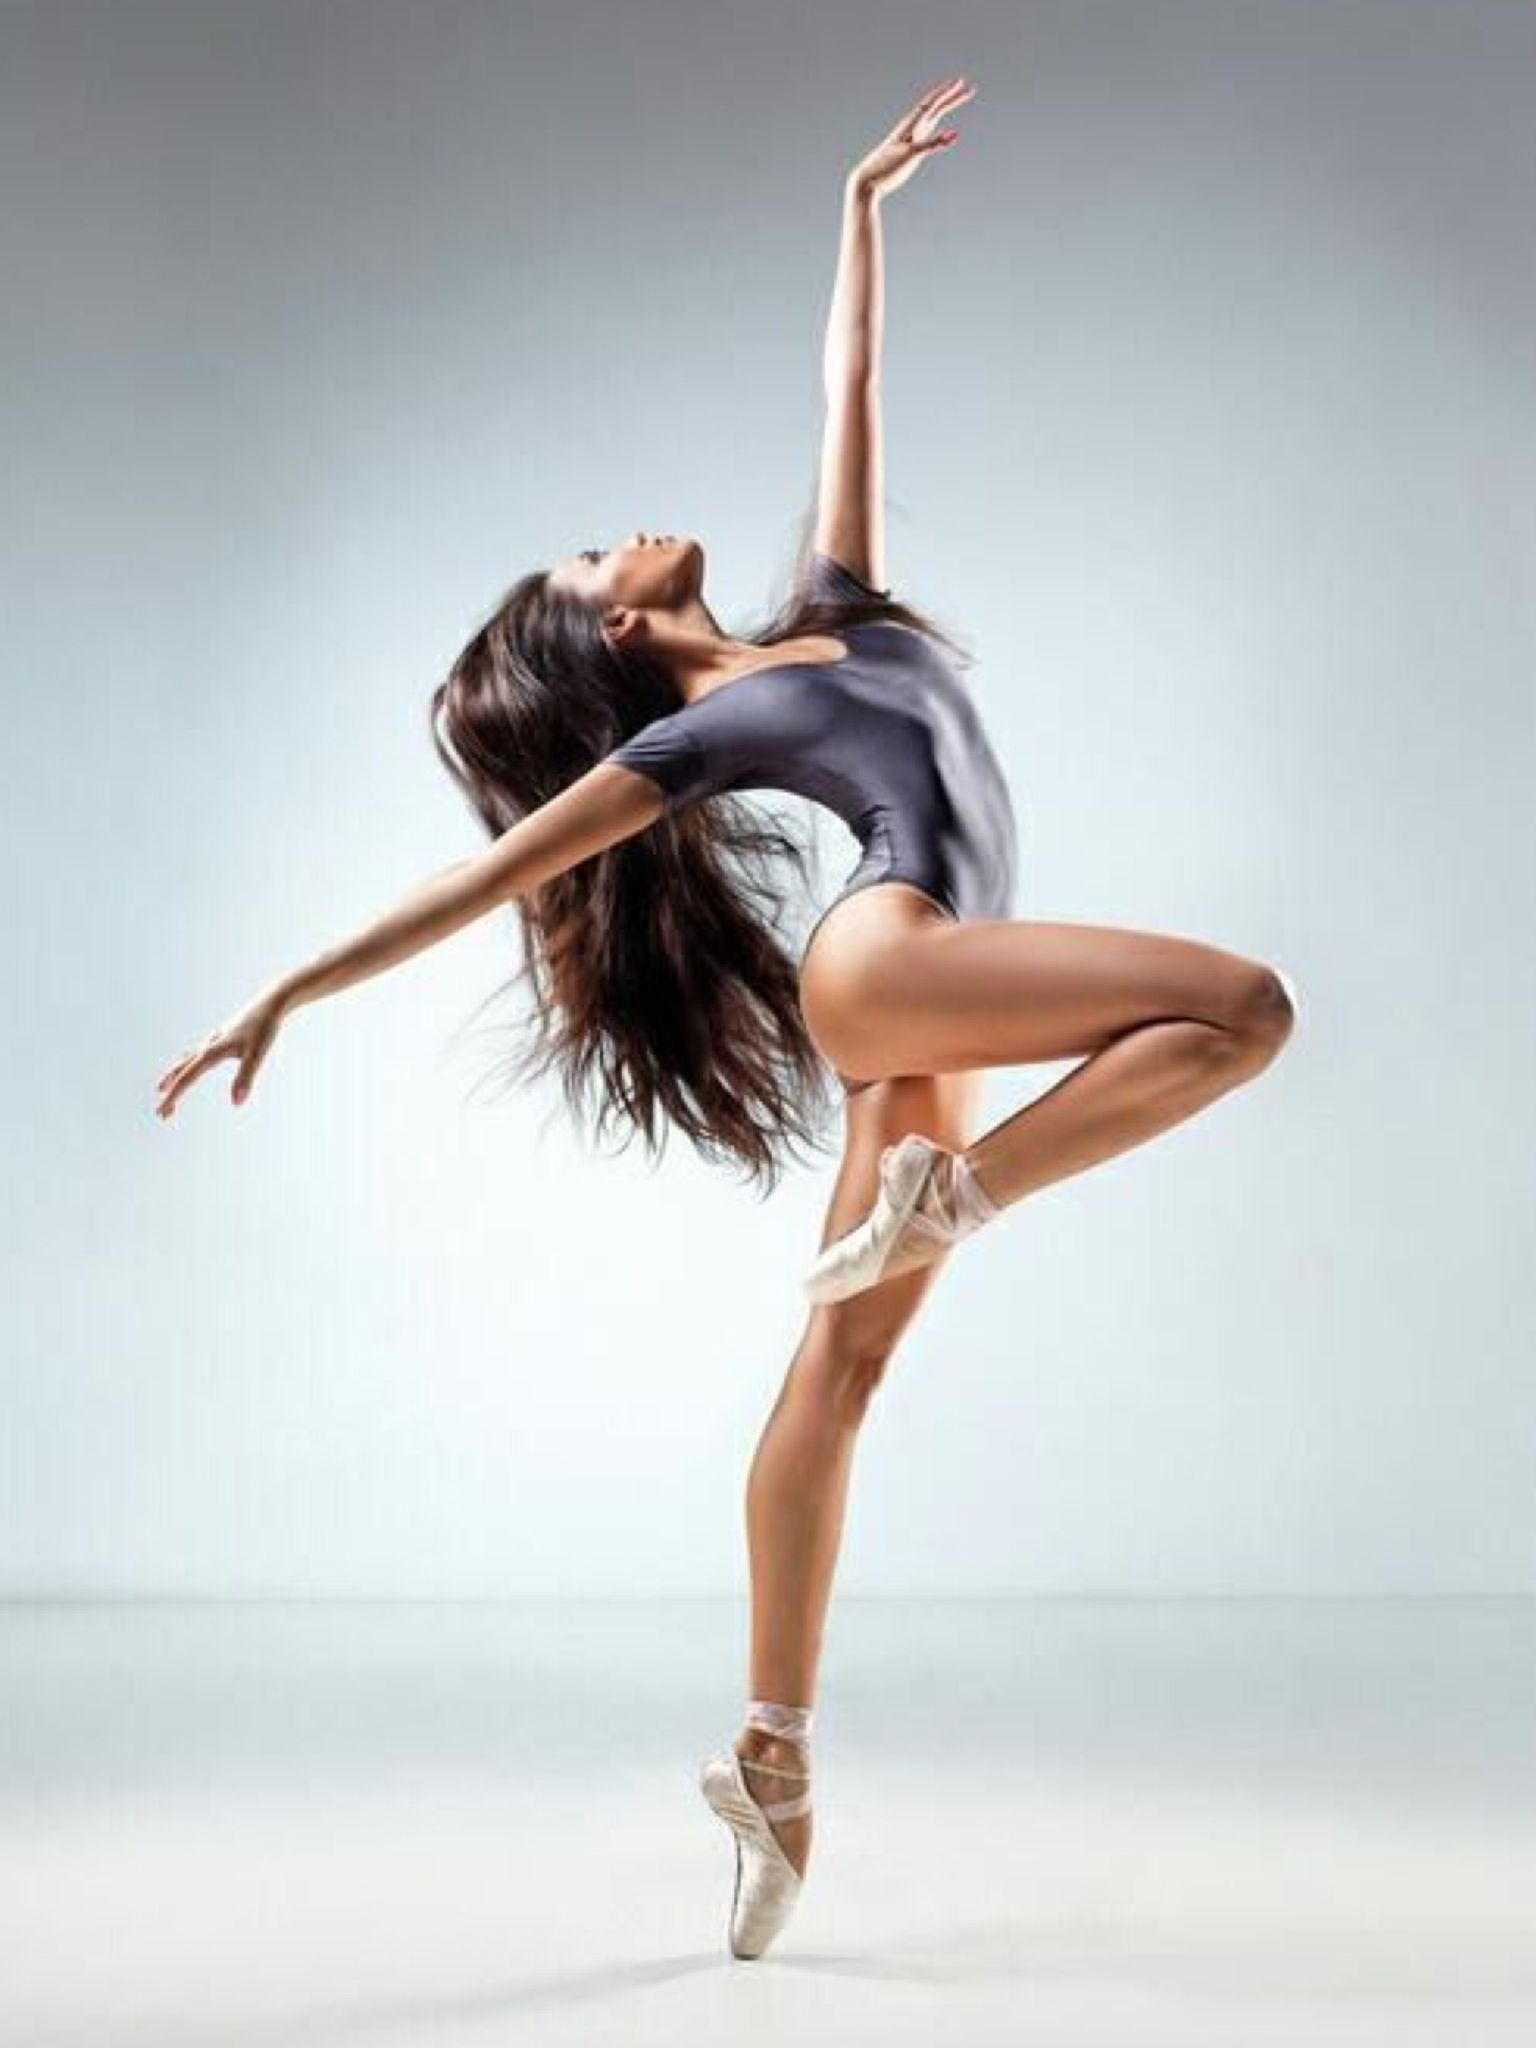 Pin By Santie Spies On Ballet Dance Pictures Dance Poses Dance Photography